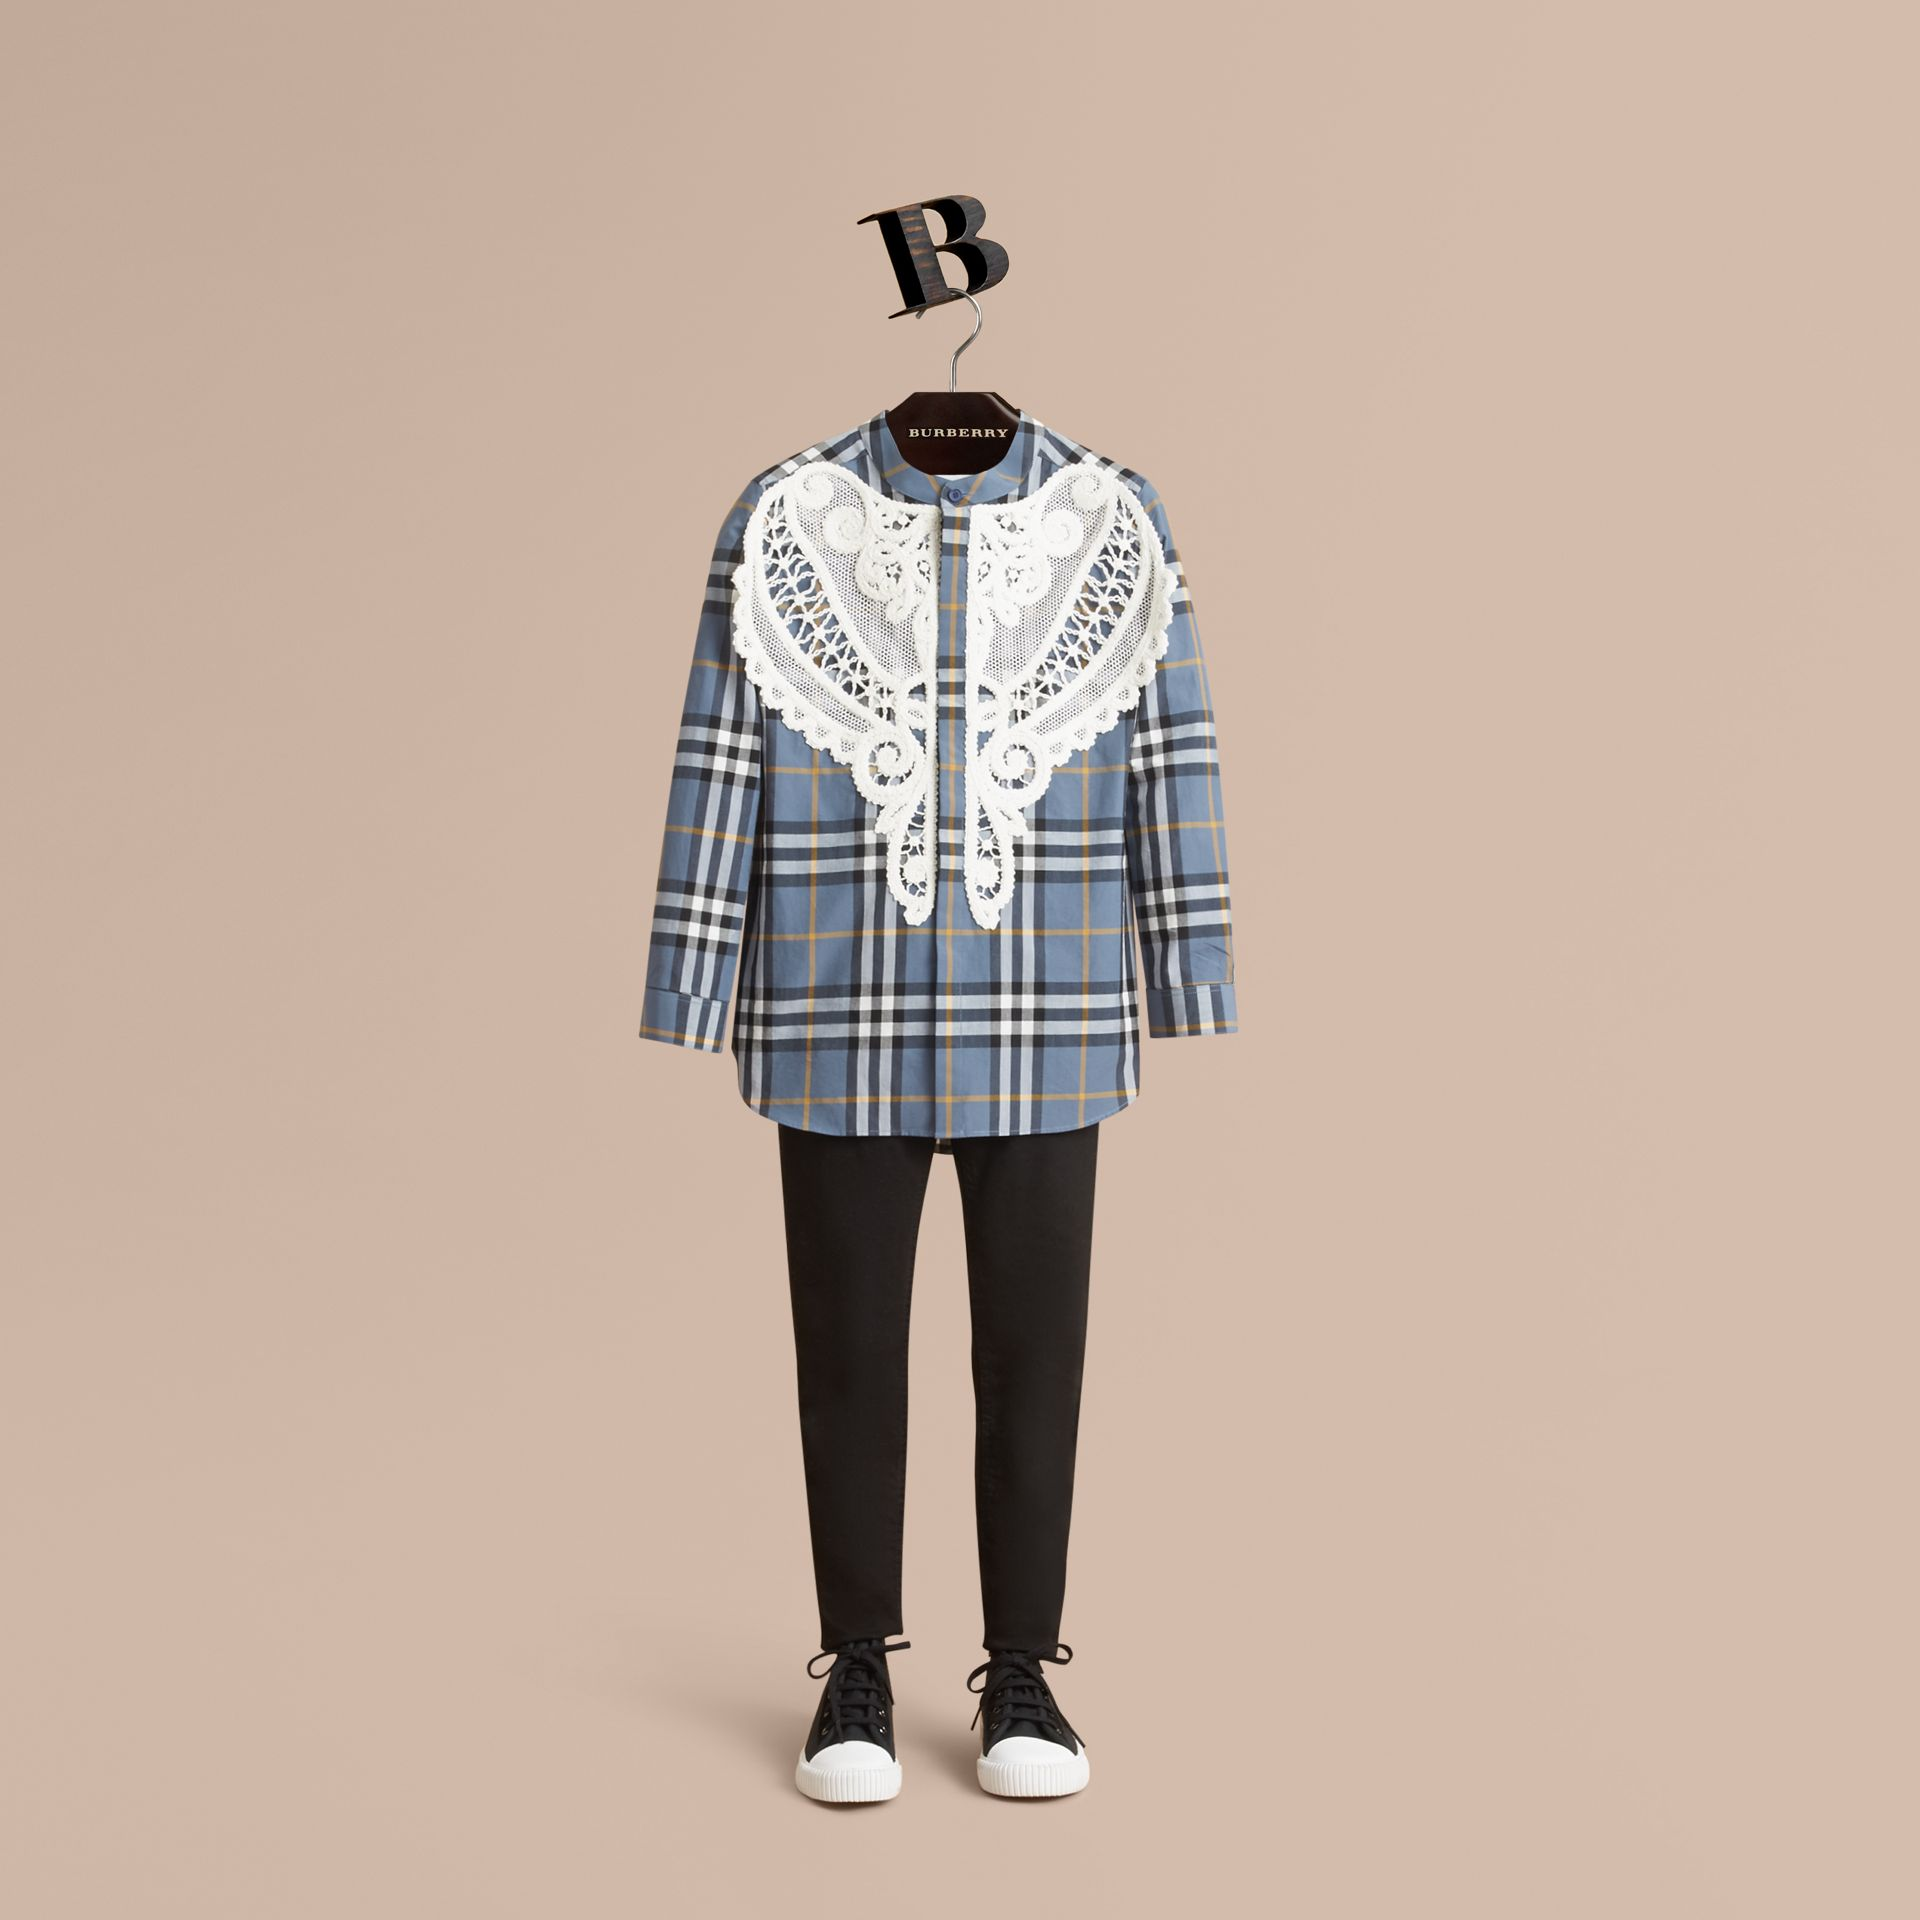 Unisex Lace Appliqué Check Cotton Shirt in Pewter Blue | Burberry - gallery image 0